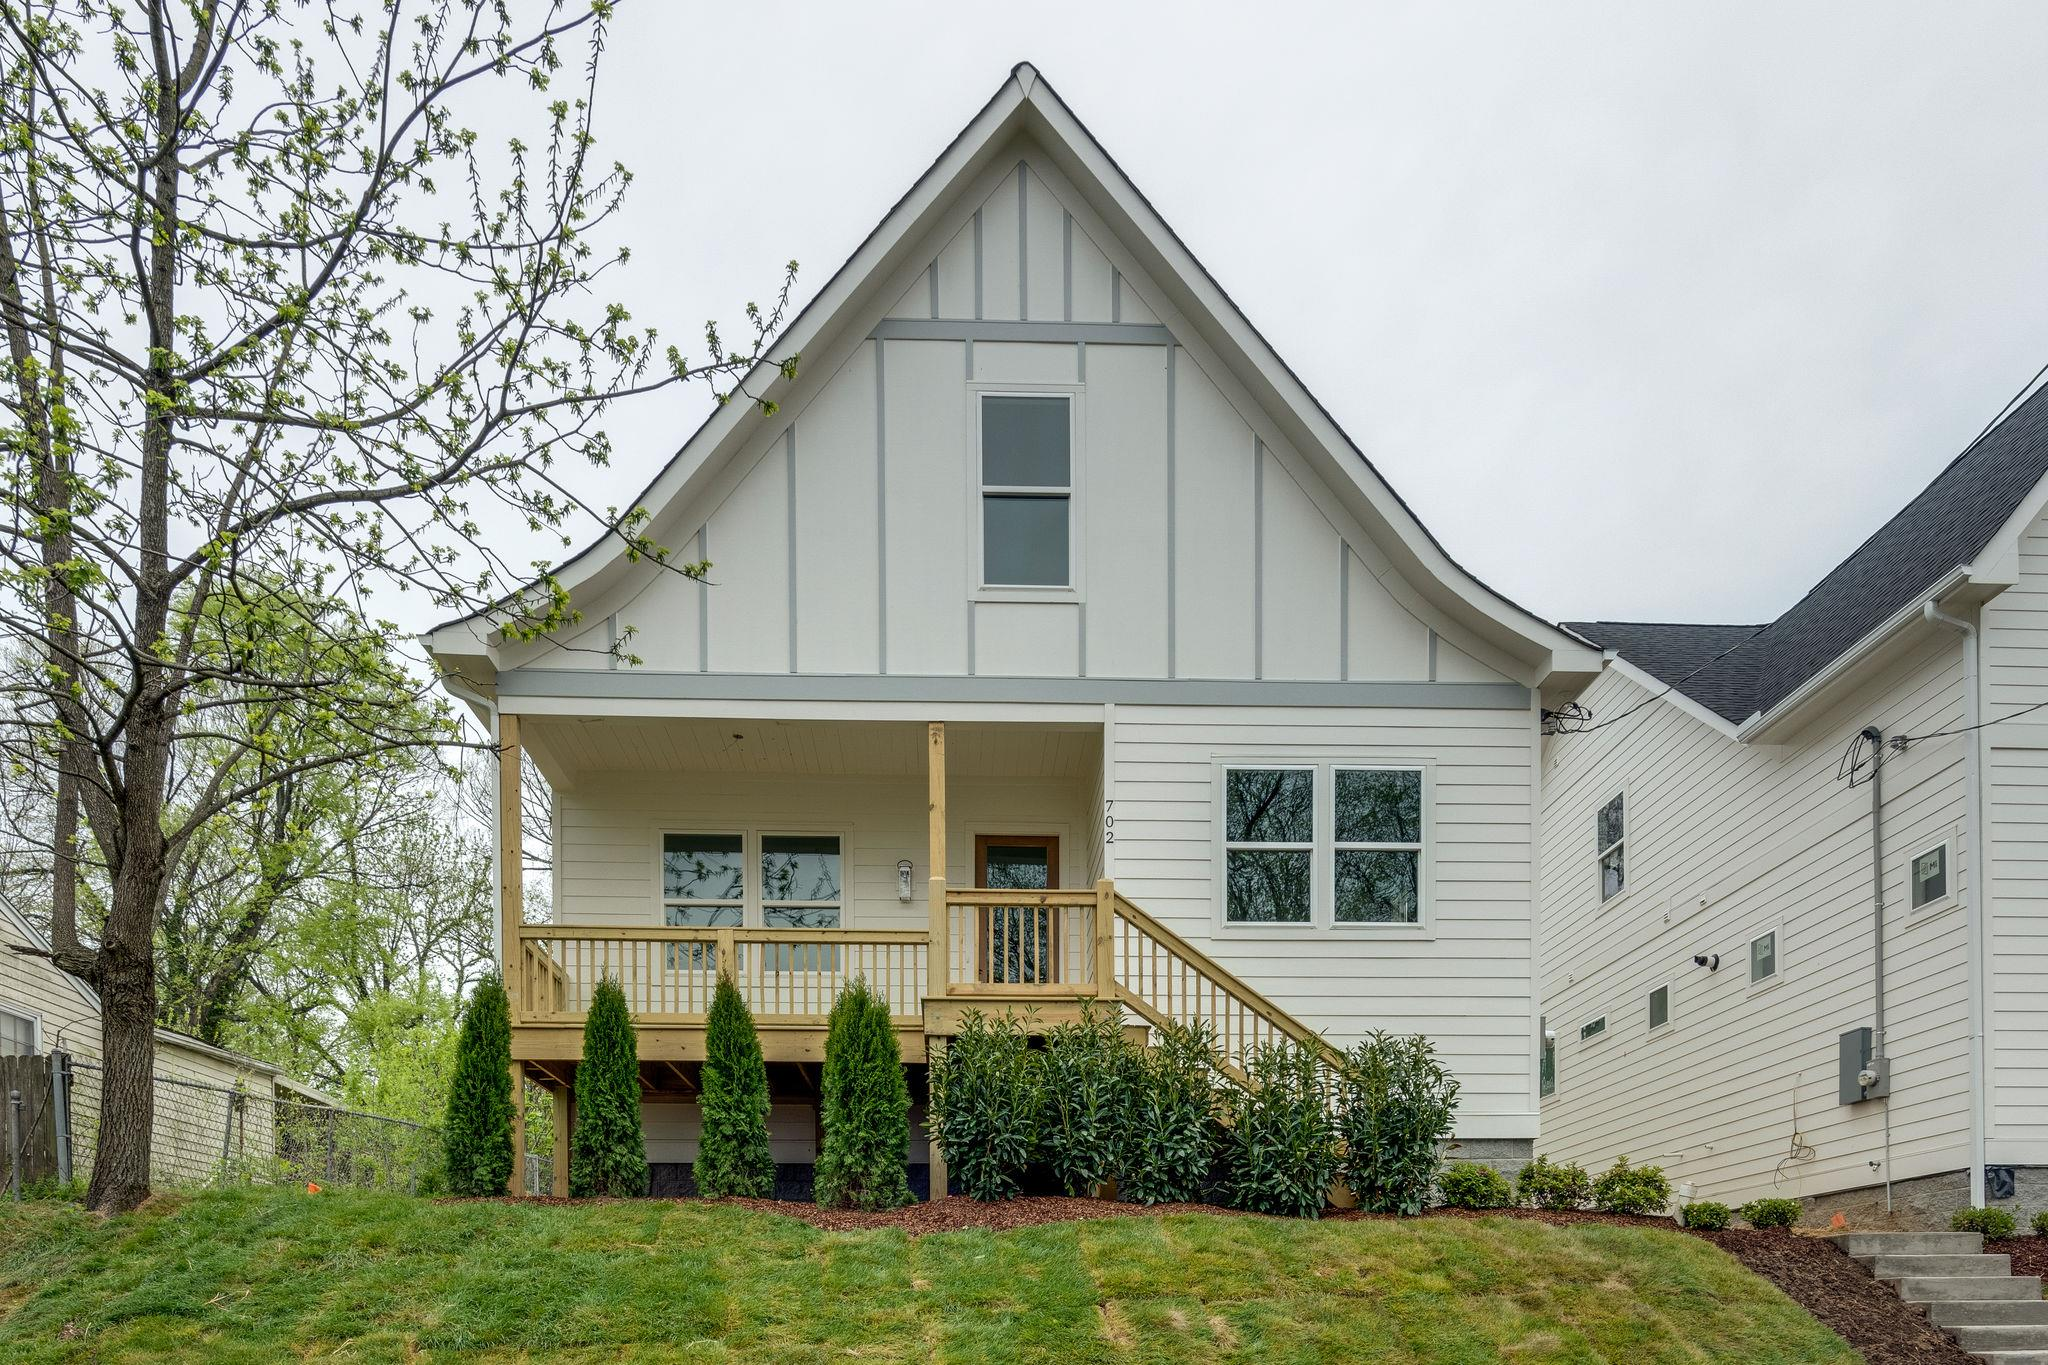 702 S 13Th St, Nashville, TN 37206 - Nashville, TN real estate listing